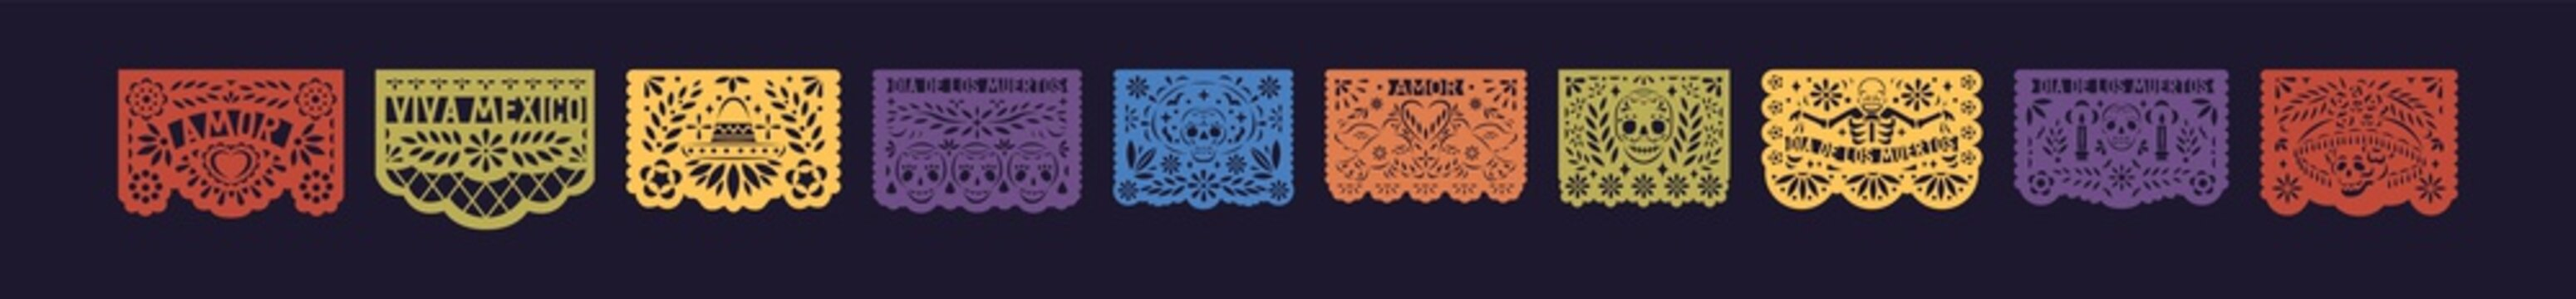 Bright festive set of mexico paper lace. Decorative papel picado with skull for Halloween or Dia De Los Muertos. Flat vector illustration of fiesta pattern for Day of the Dead isolated on black